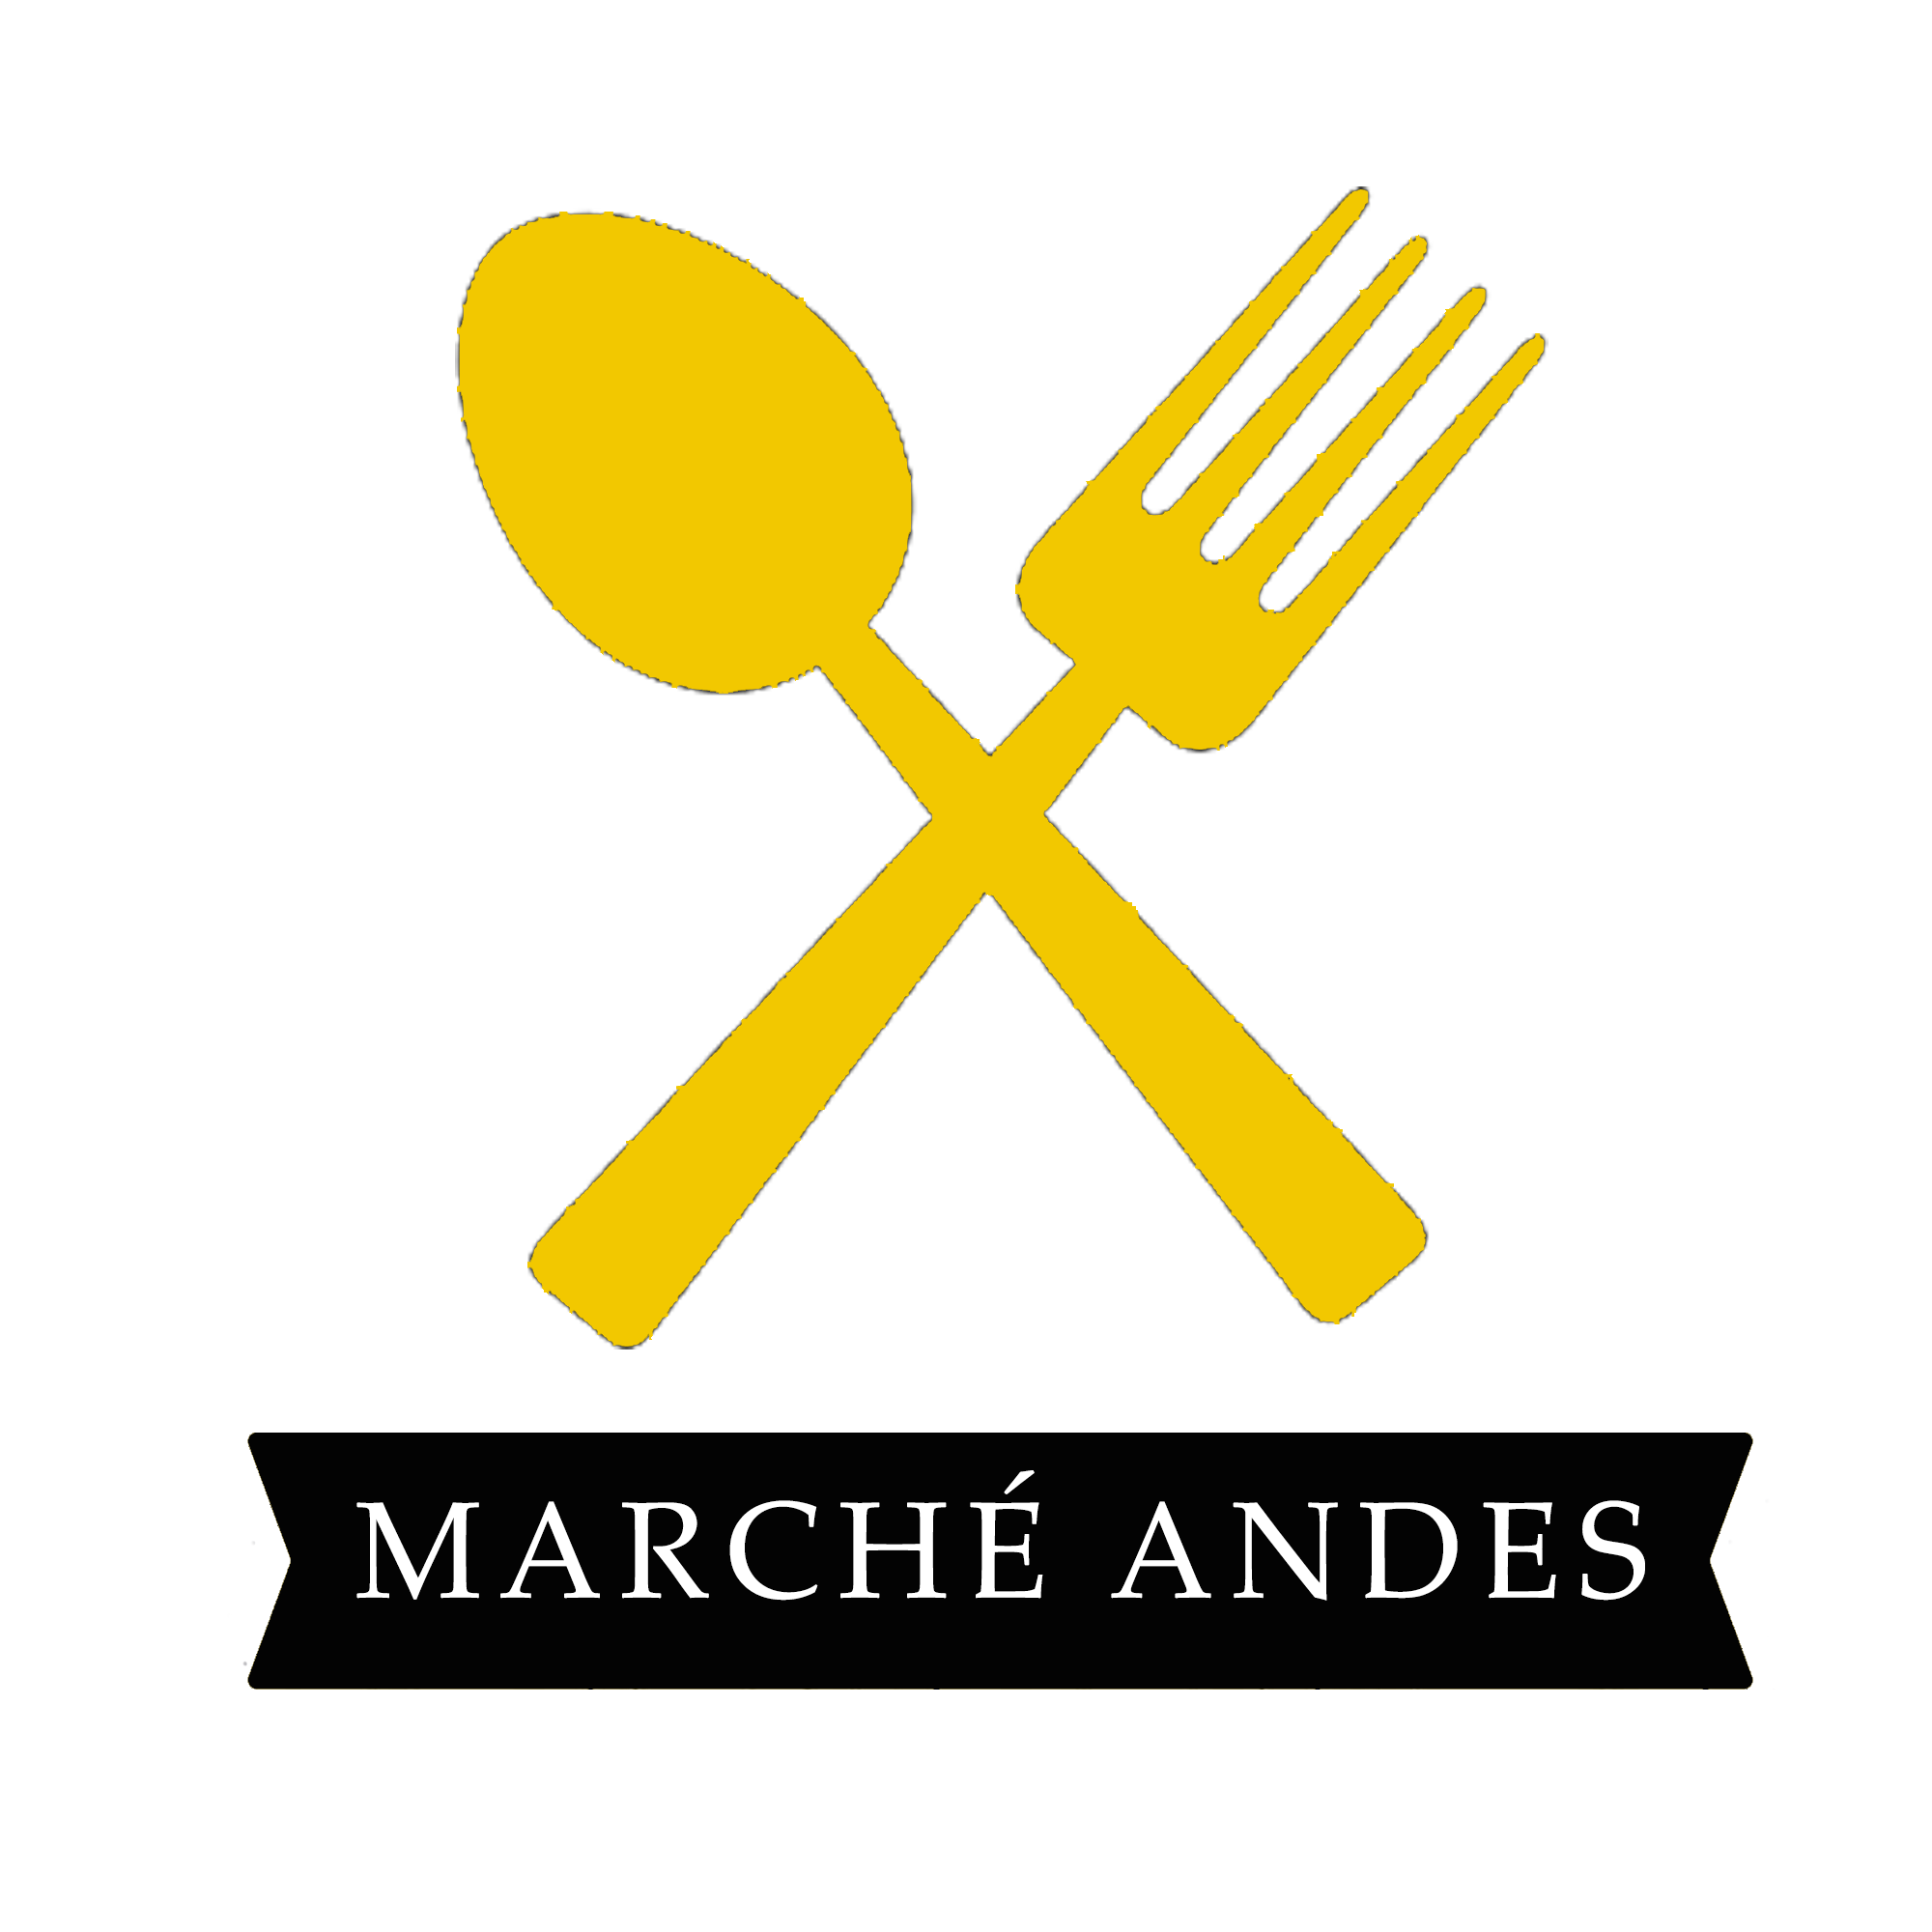 Restaurant Marché Andes